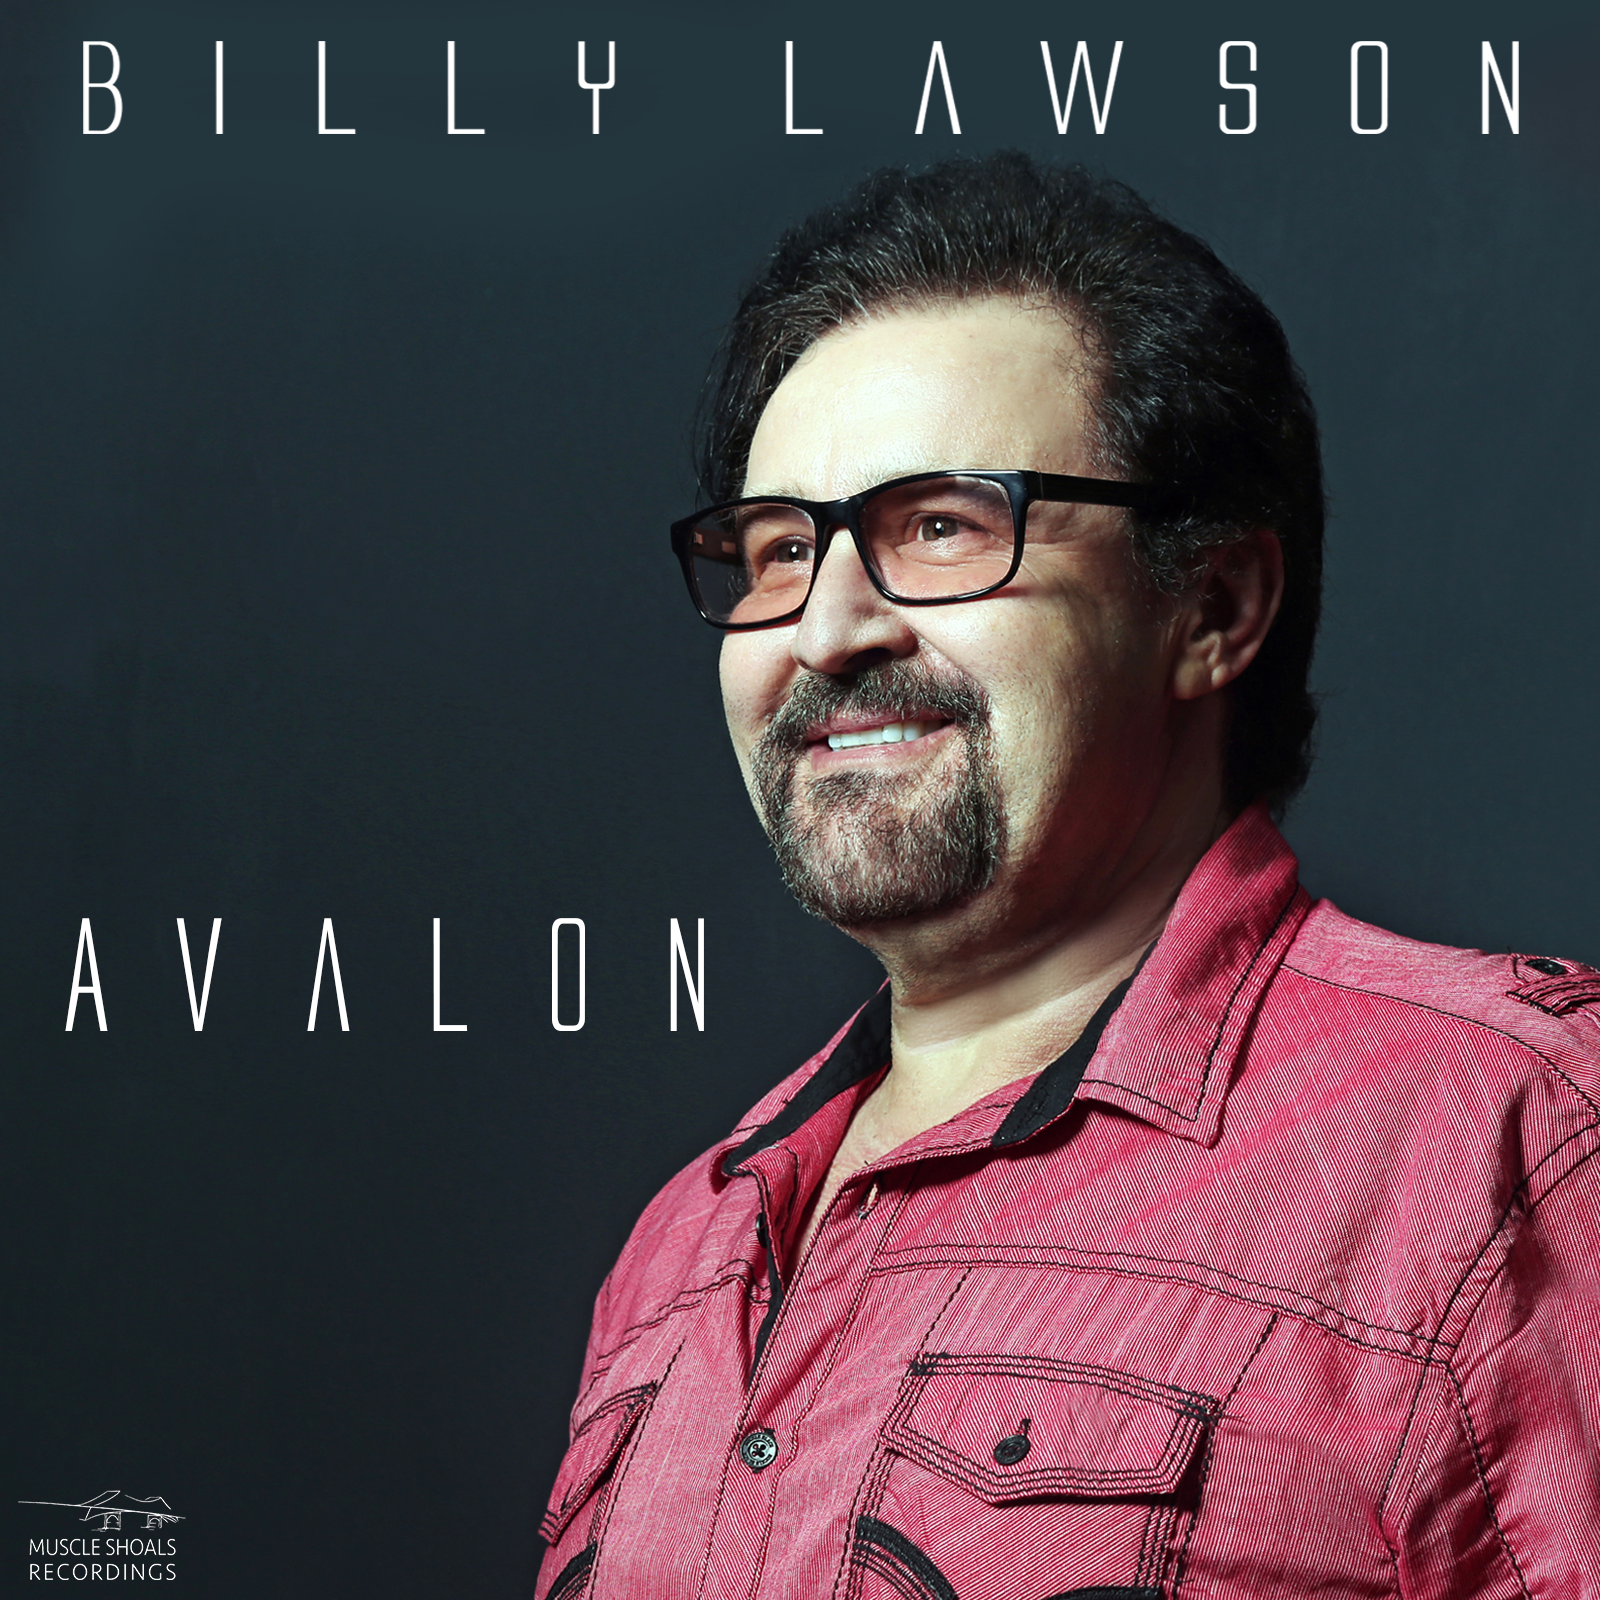 Billy Lawson Muscle Shoals Alabama Avalon Album song recordings